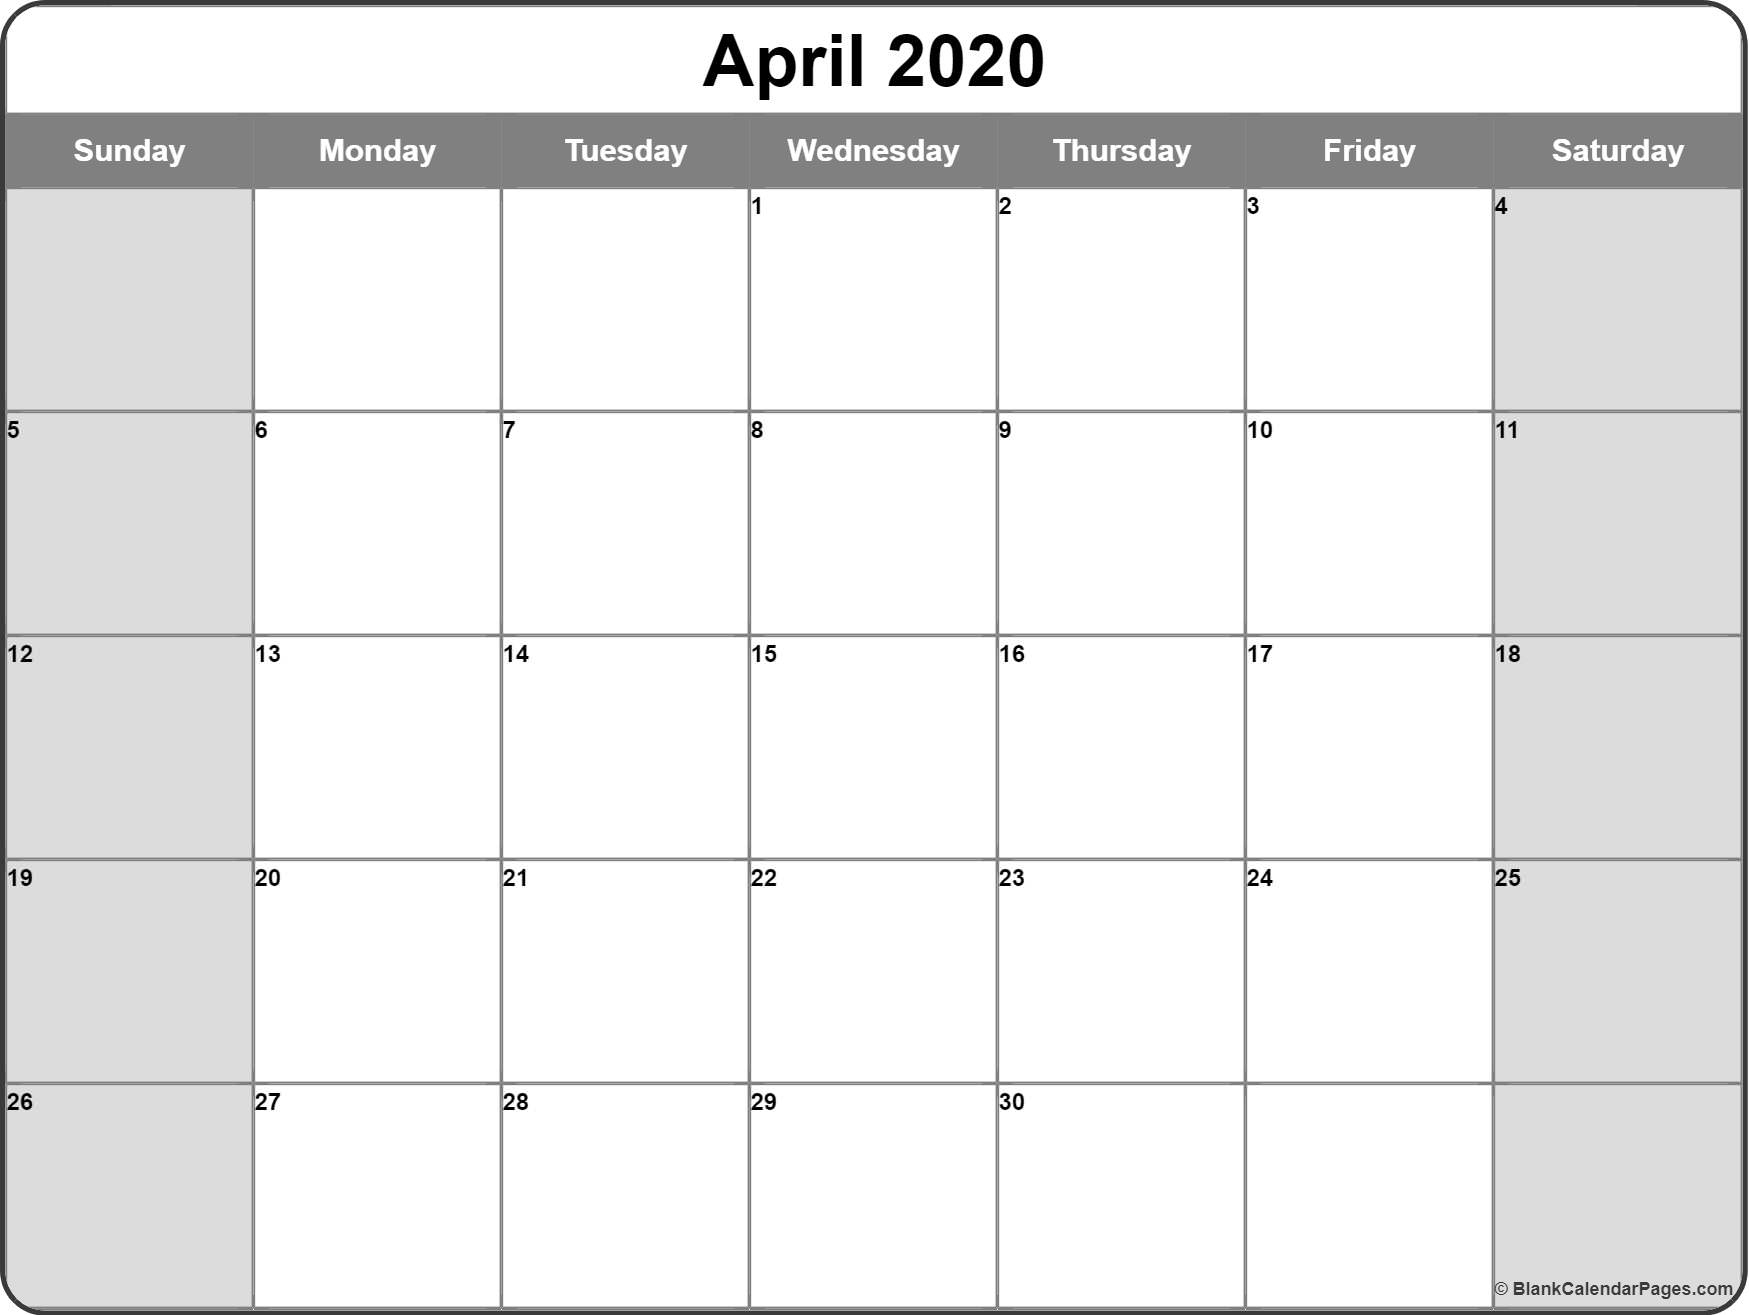 April 2020 Calendar | Free Printable Monthly Calendars throughout Free Printable 5 Day Monthly Calendar